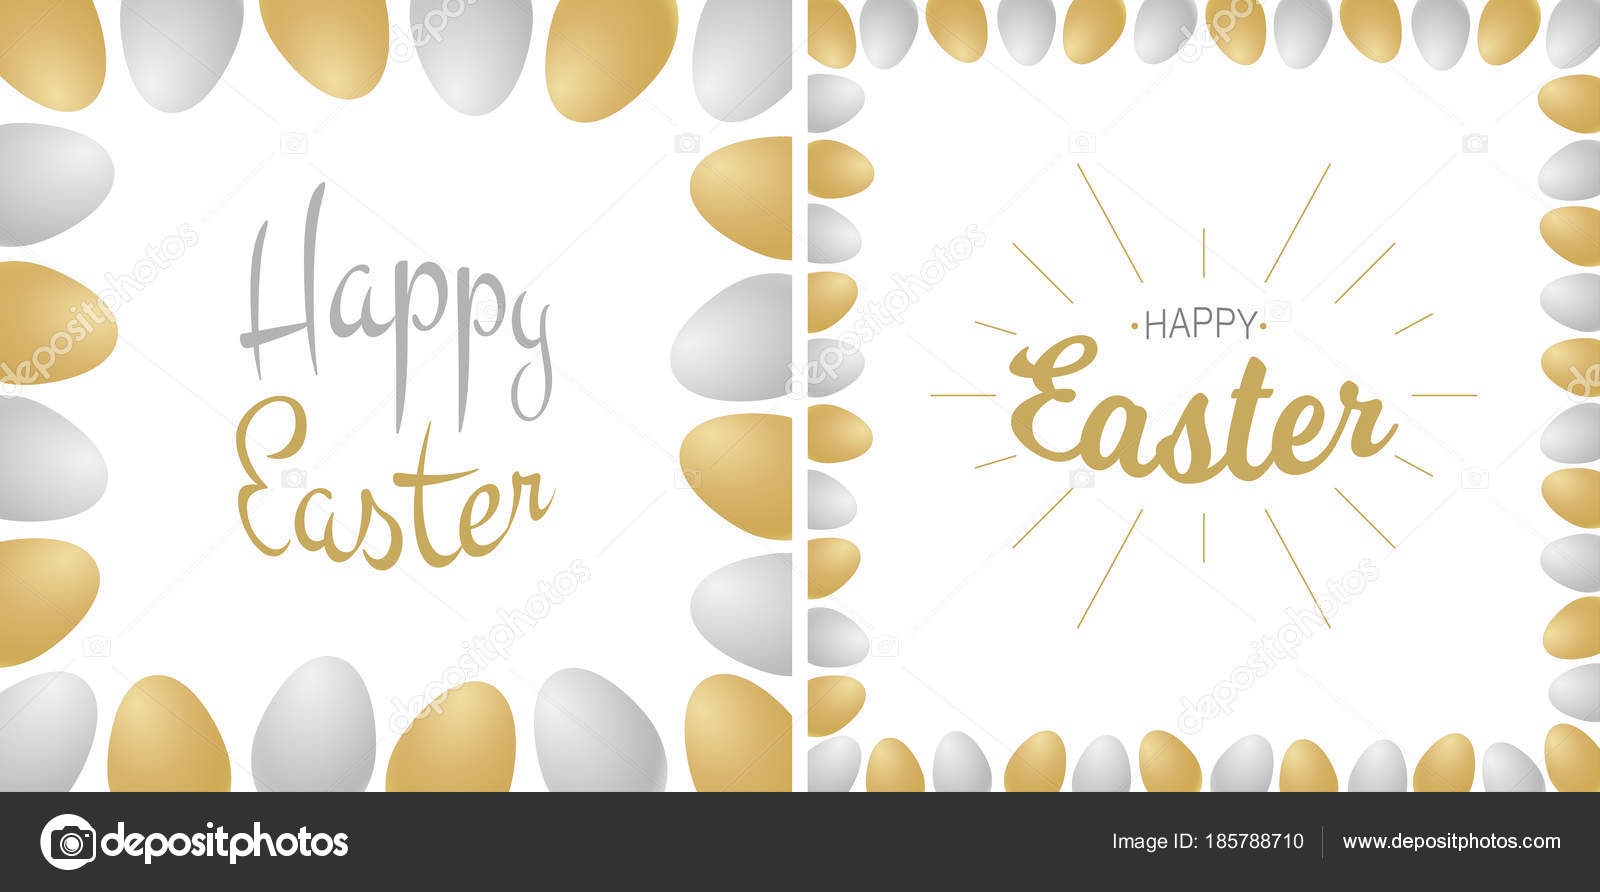 Easter greetings card gold silver typographic calligraphic easter greetings card gold silver typographic calligraphic lettering isolated on white background with gold m4hsunfo